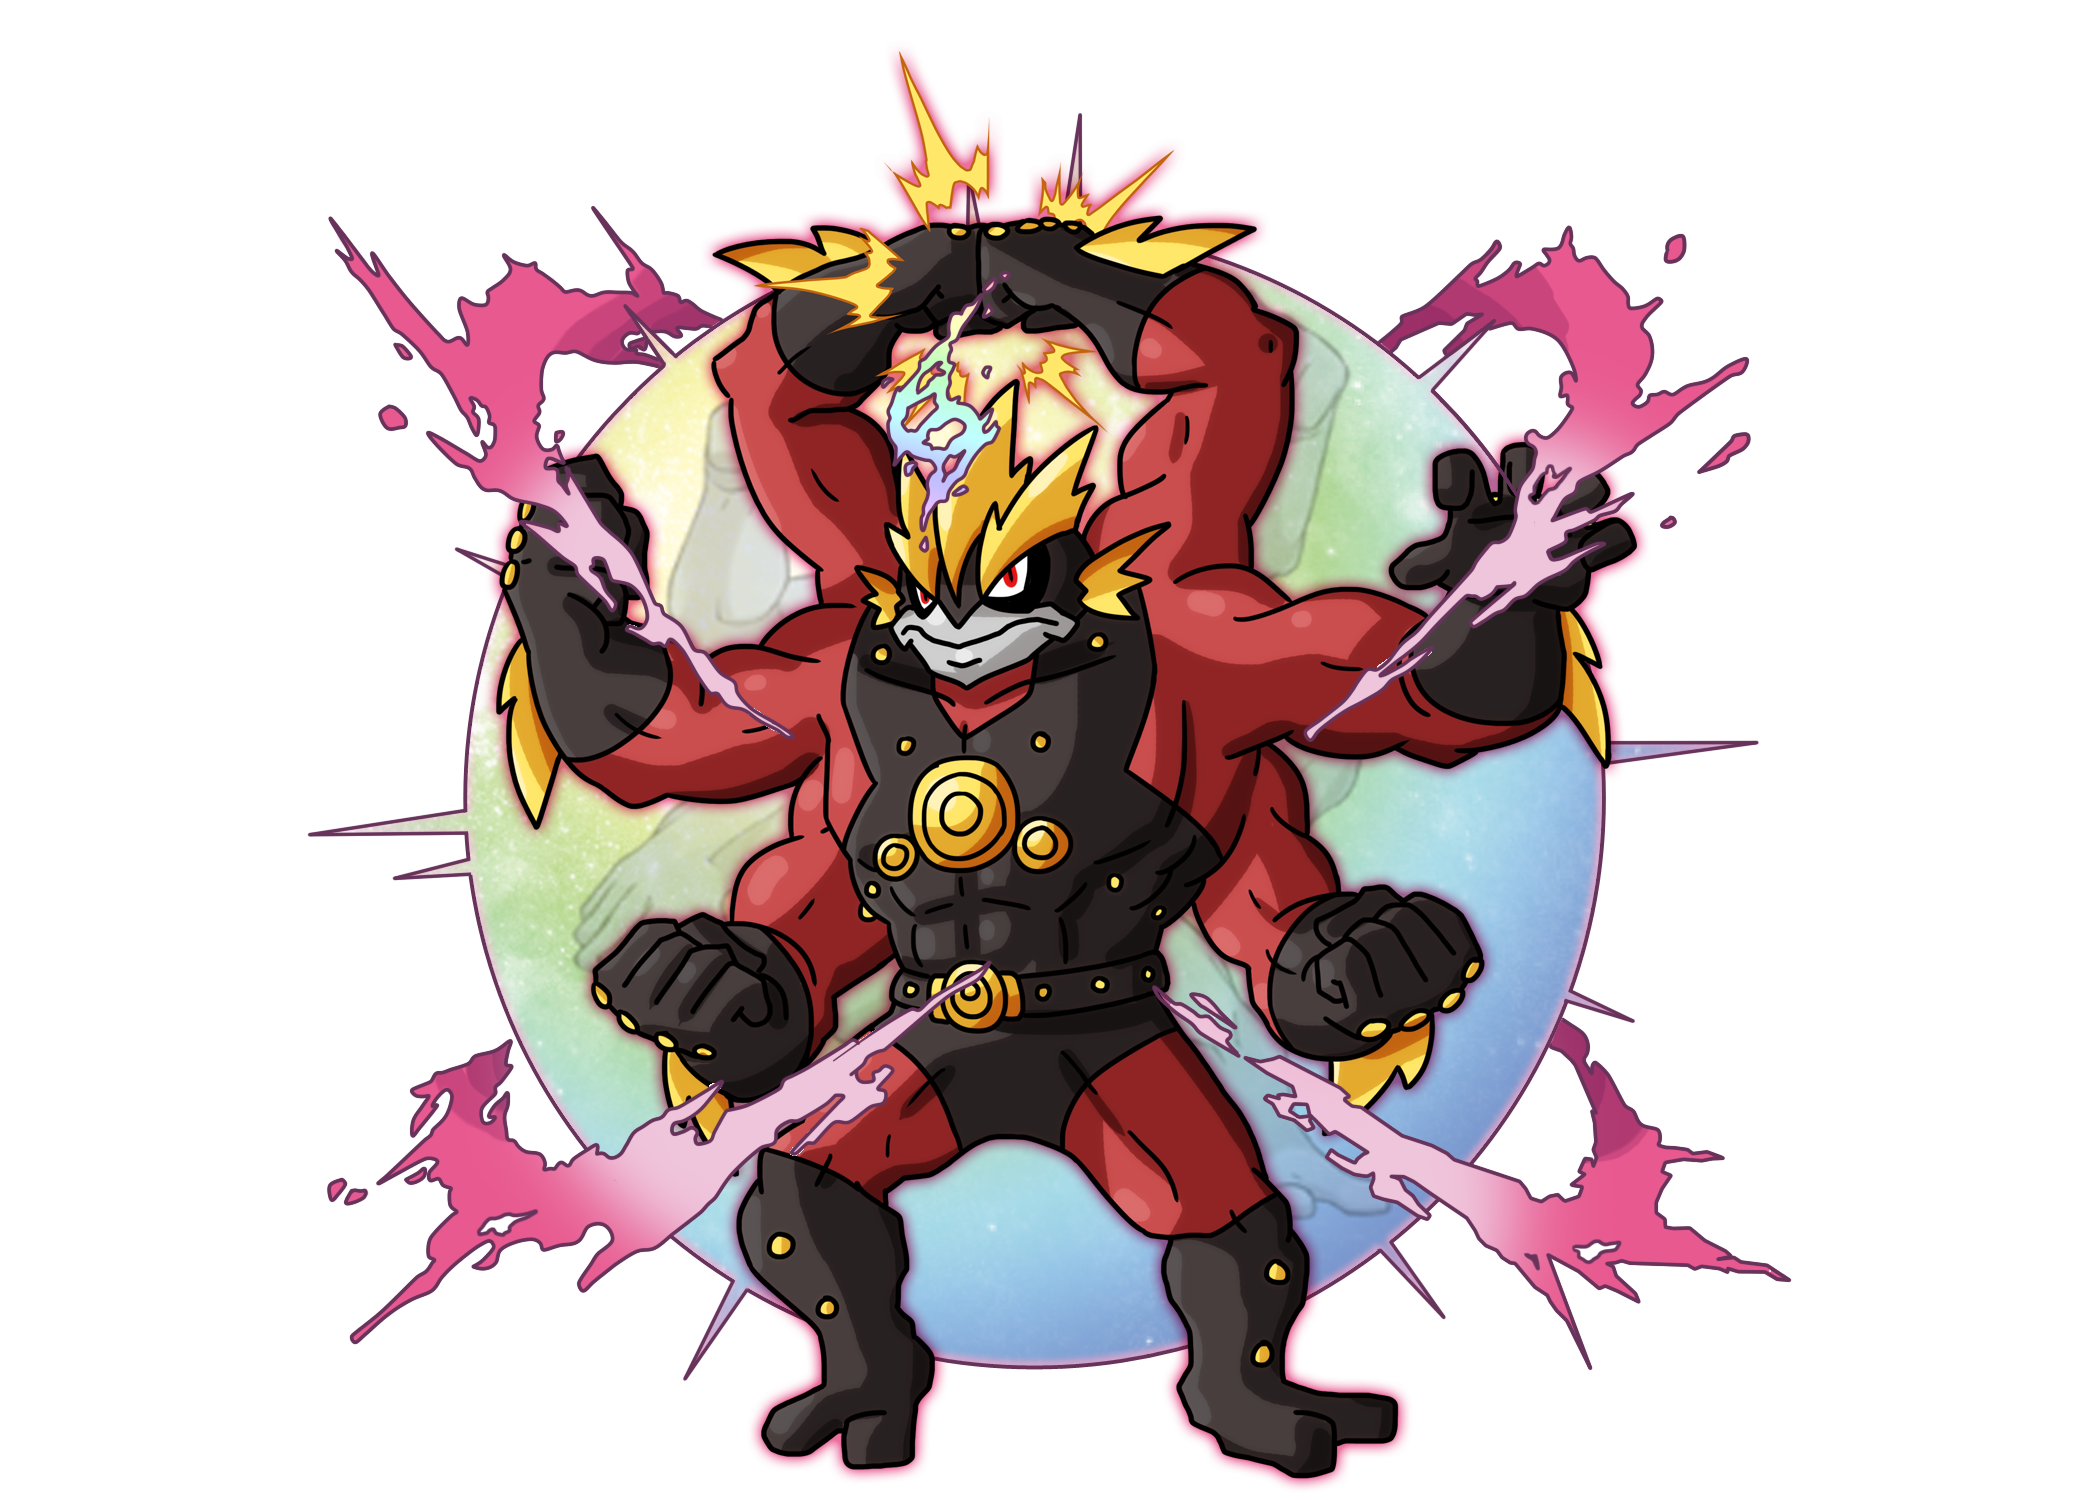 [Resim: mega_fakemon__megamachamp___buy_now__by_...6icjbx.png]